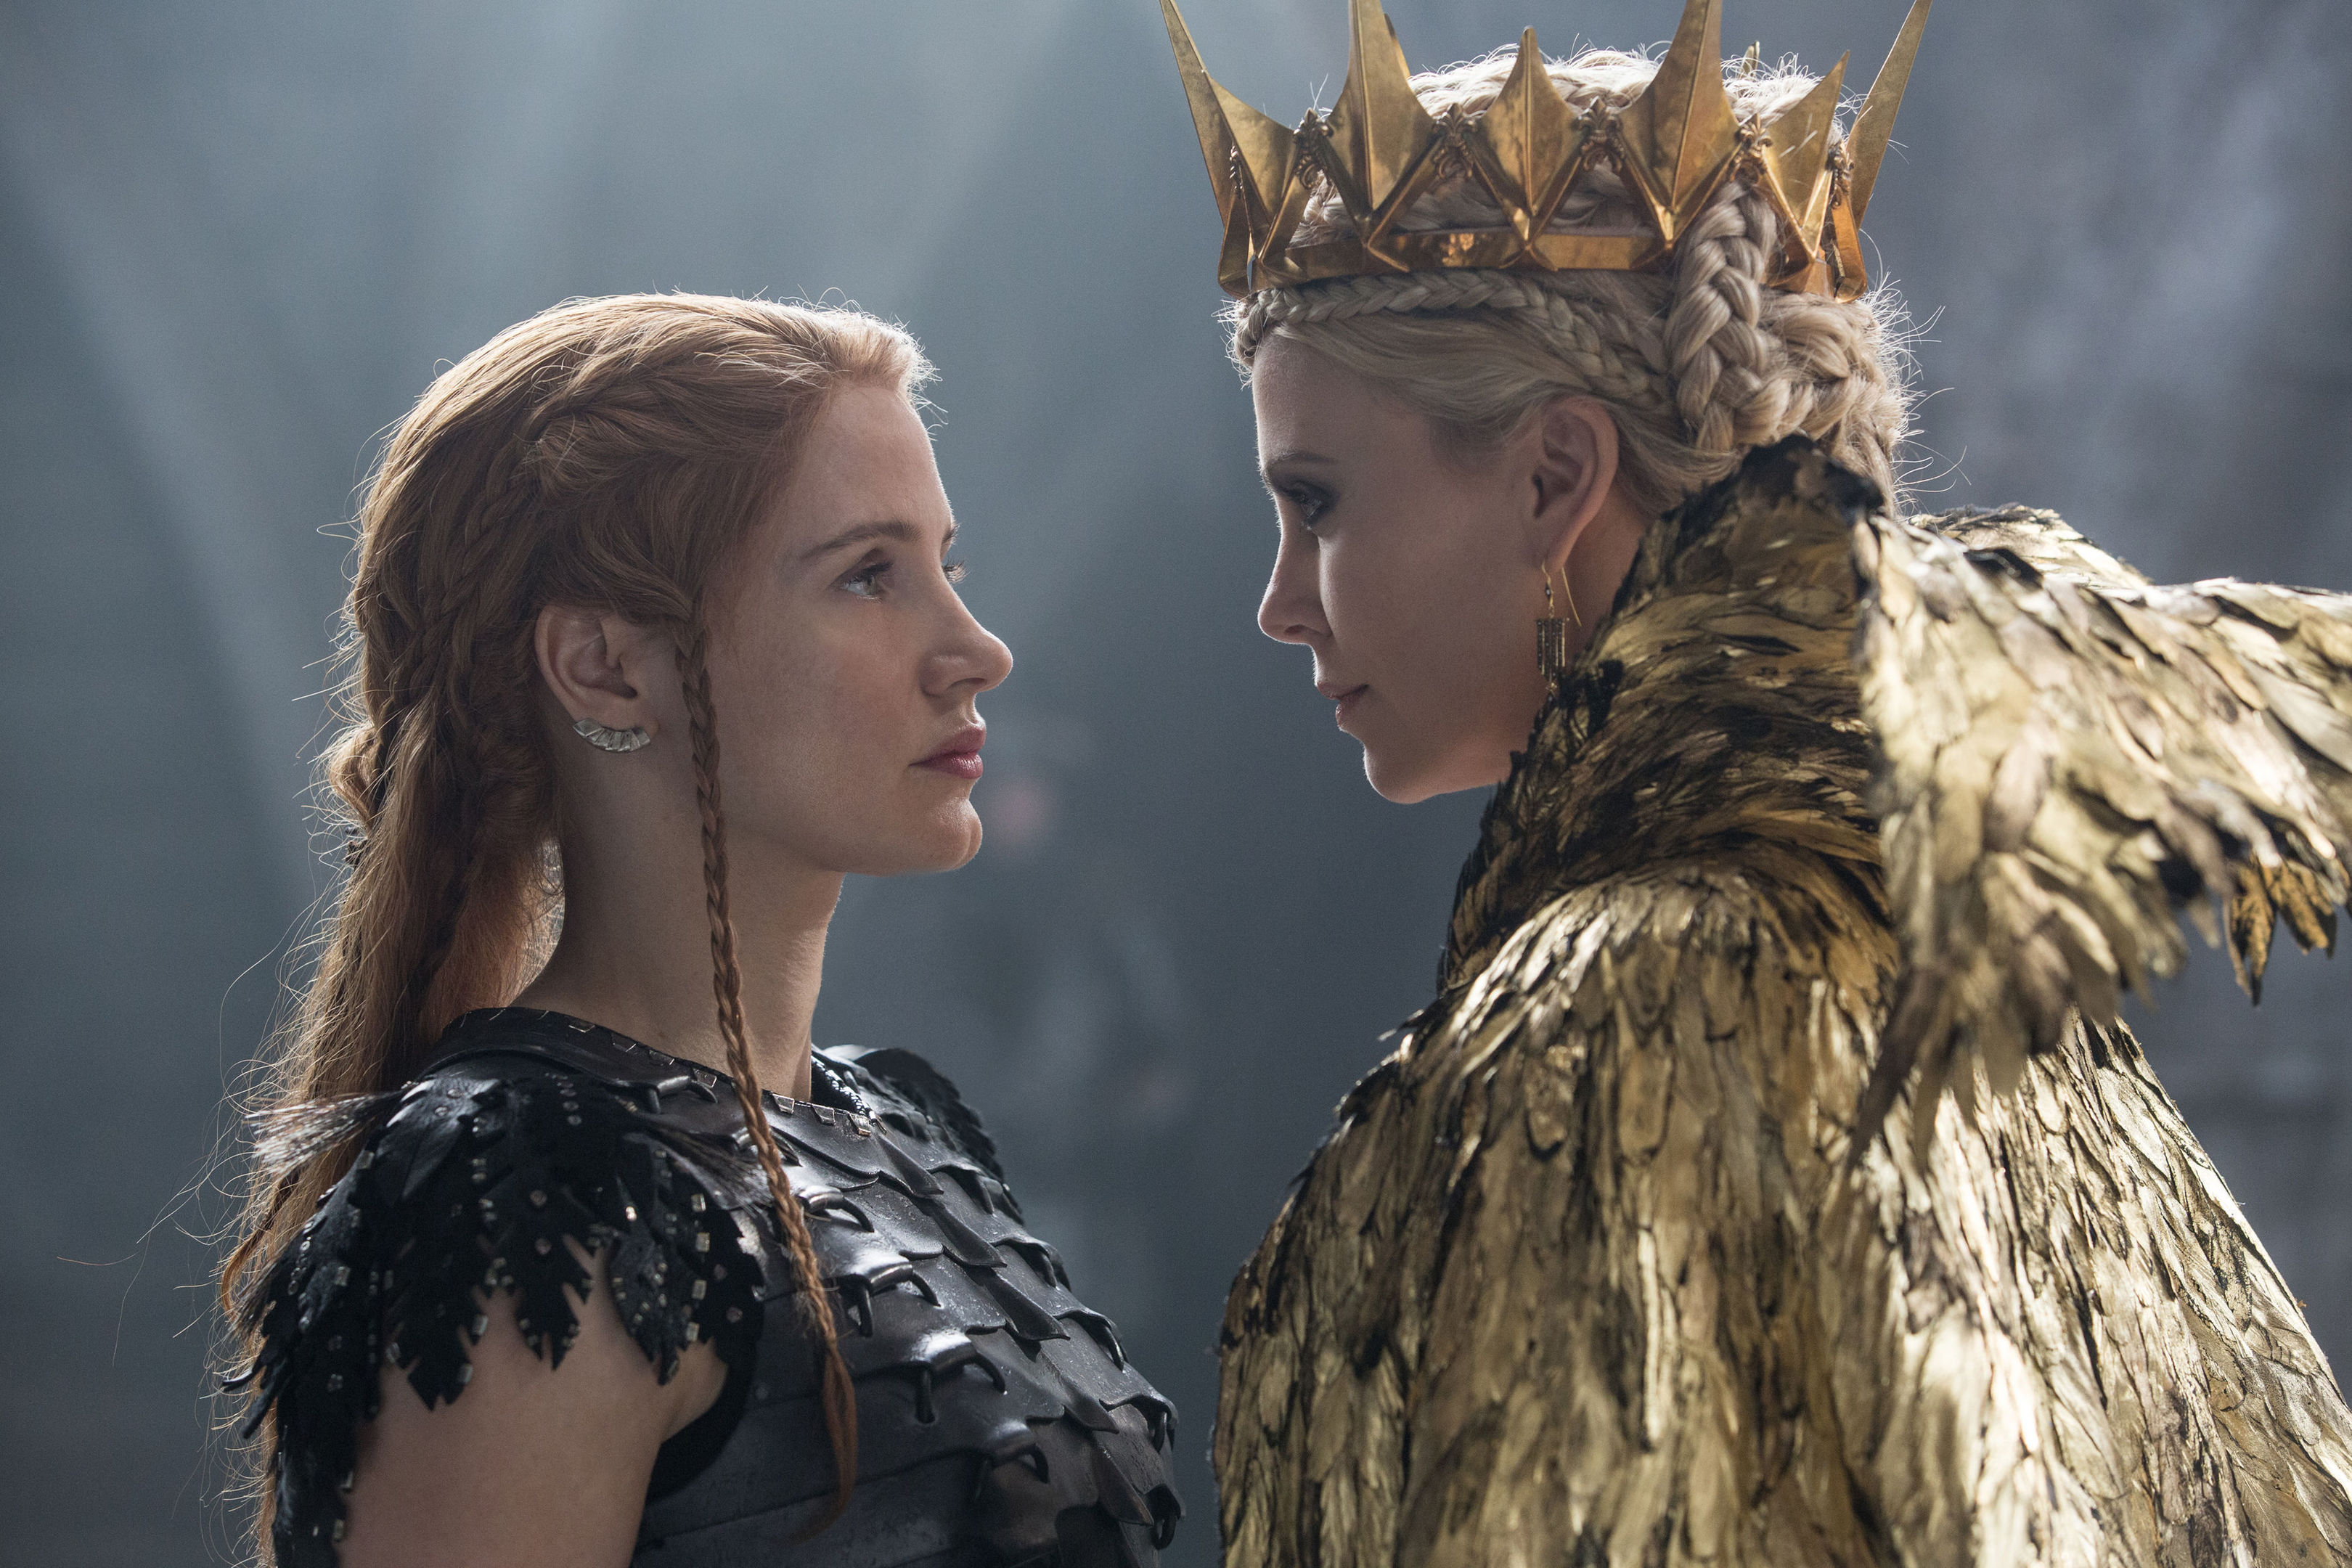 Jessica Chastain and Charlize Theron star in The Huntsman: Winter's War